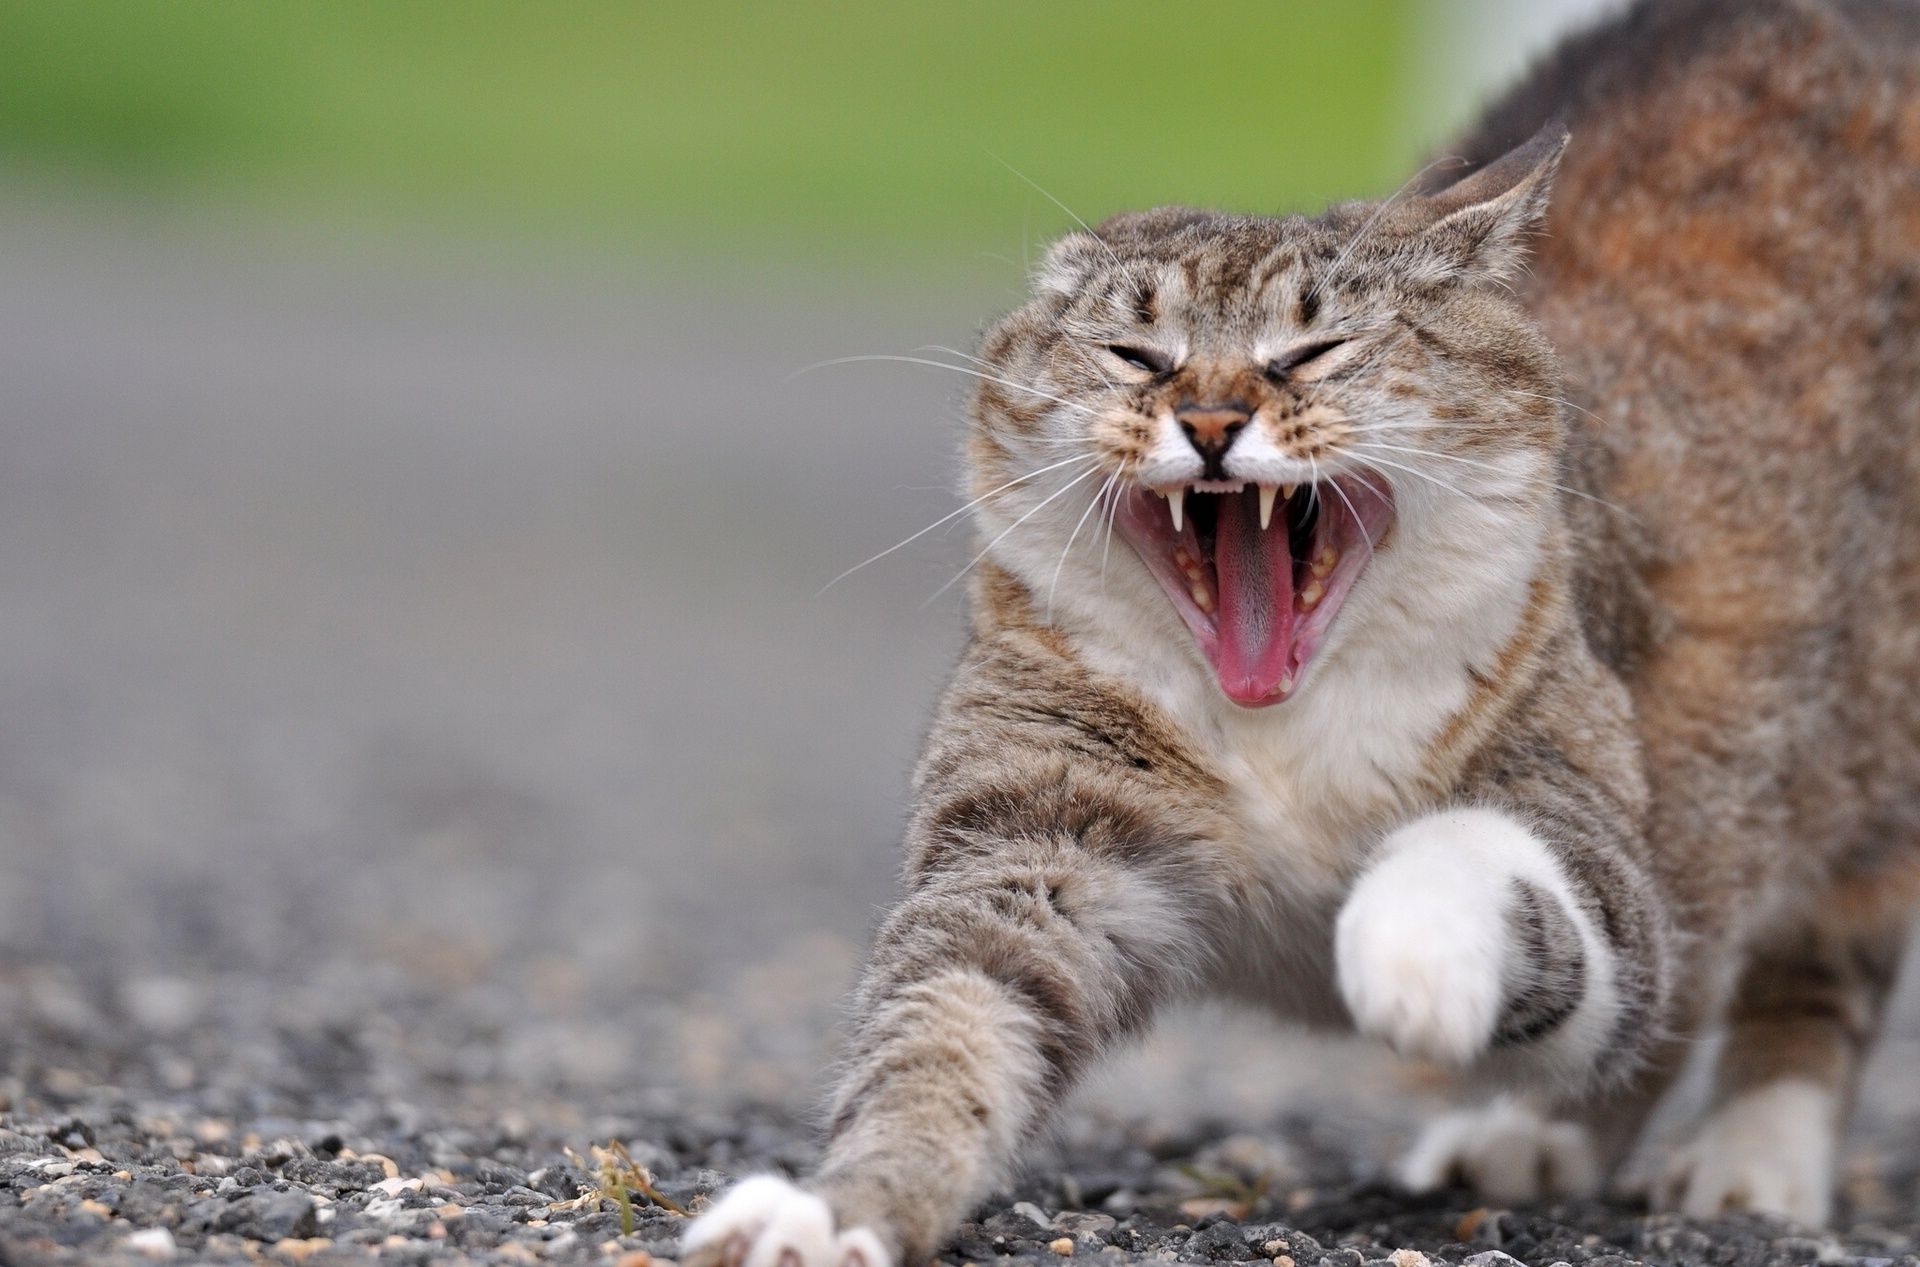 images of angry animals Angry Cat Photo 2 (With images